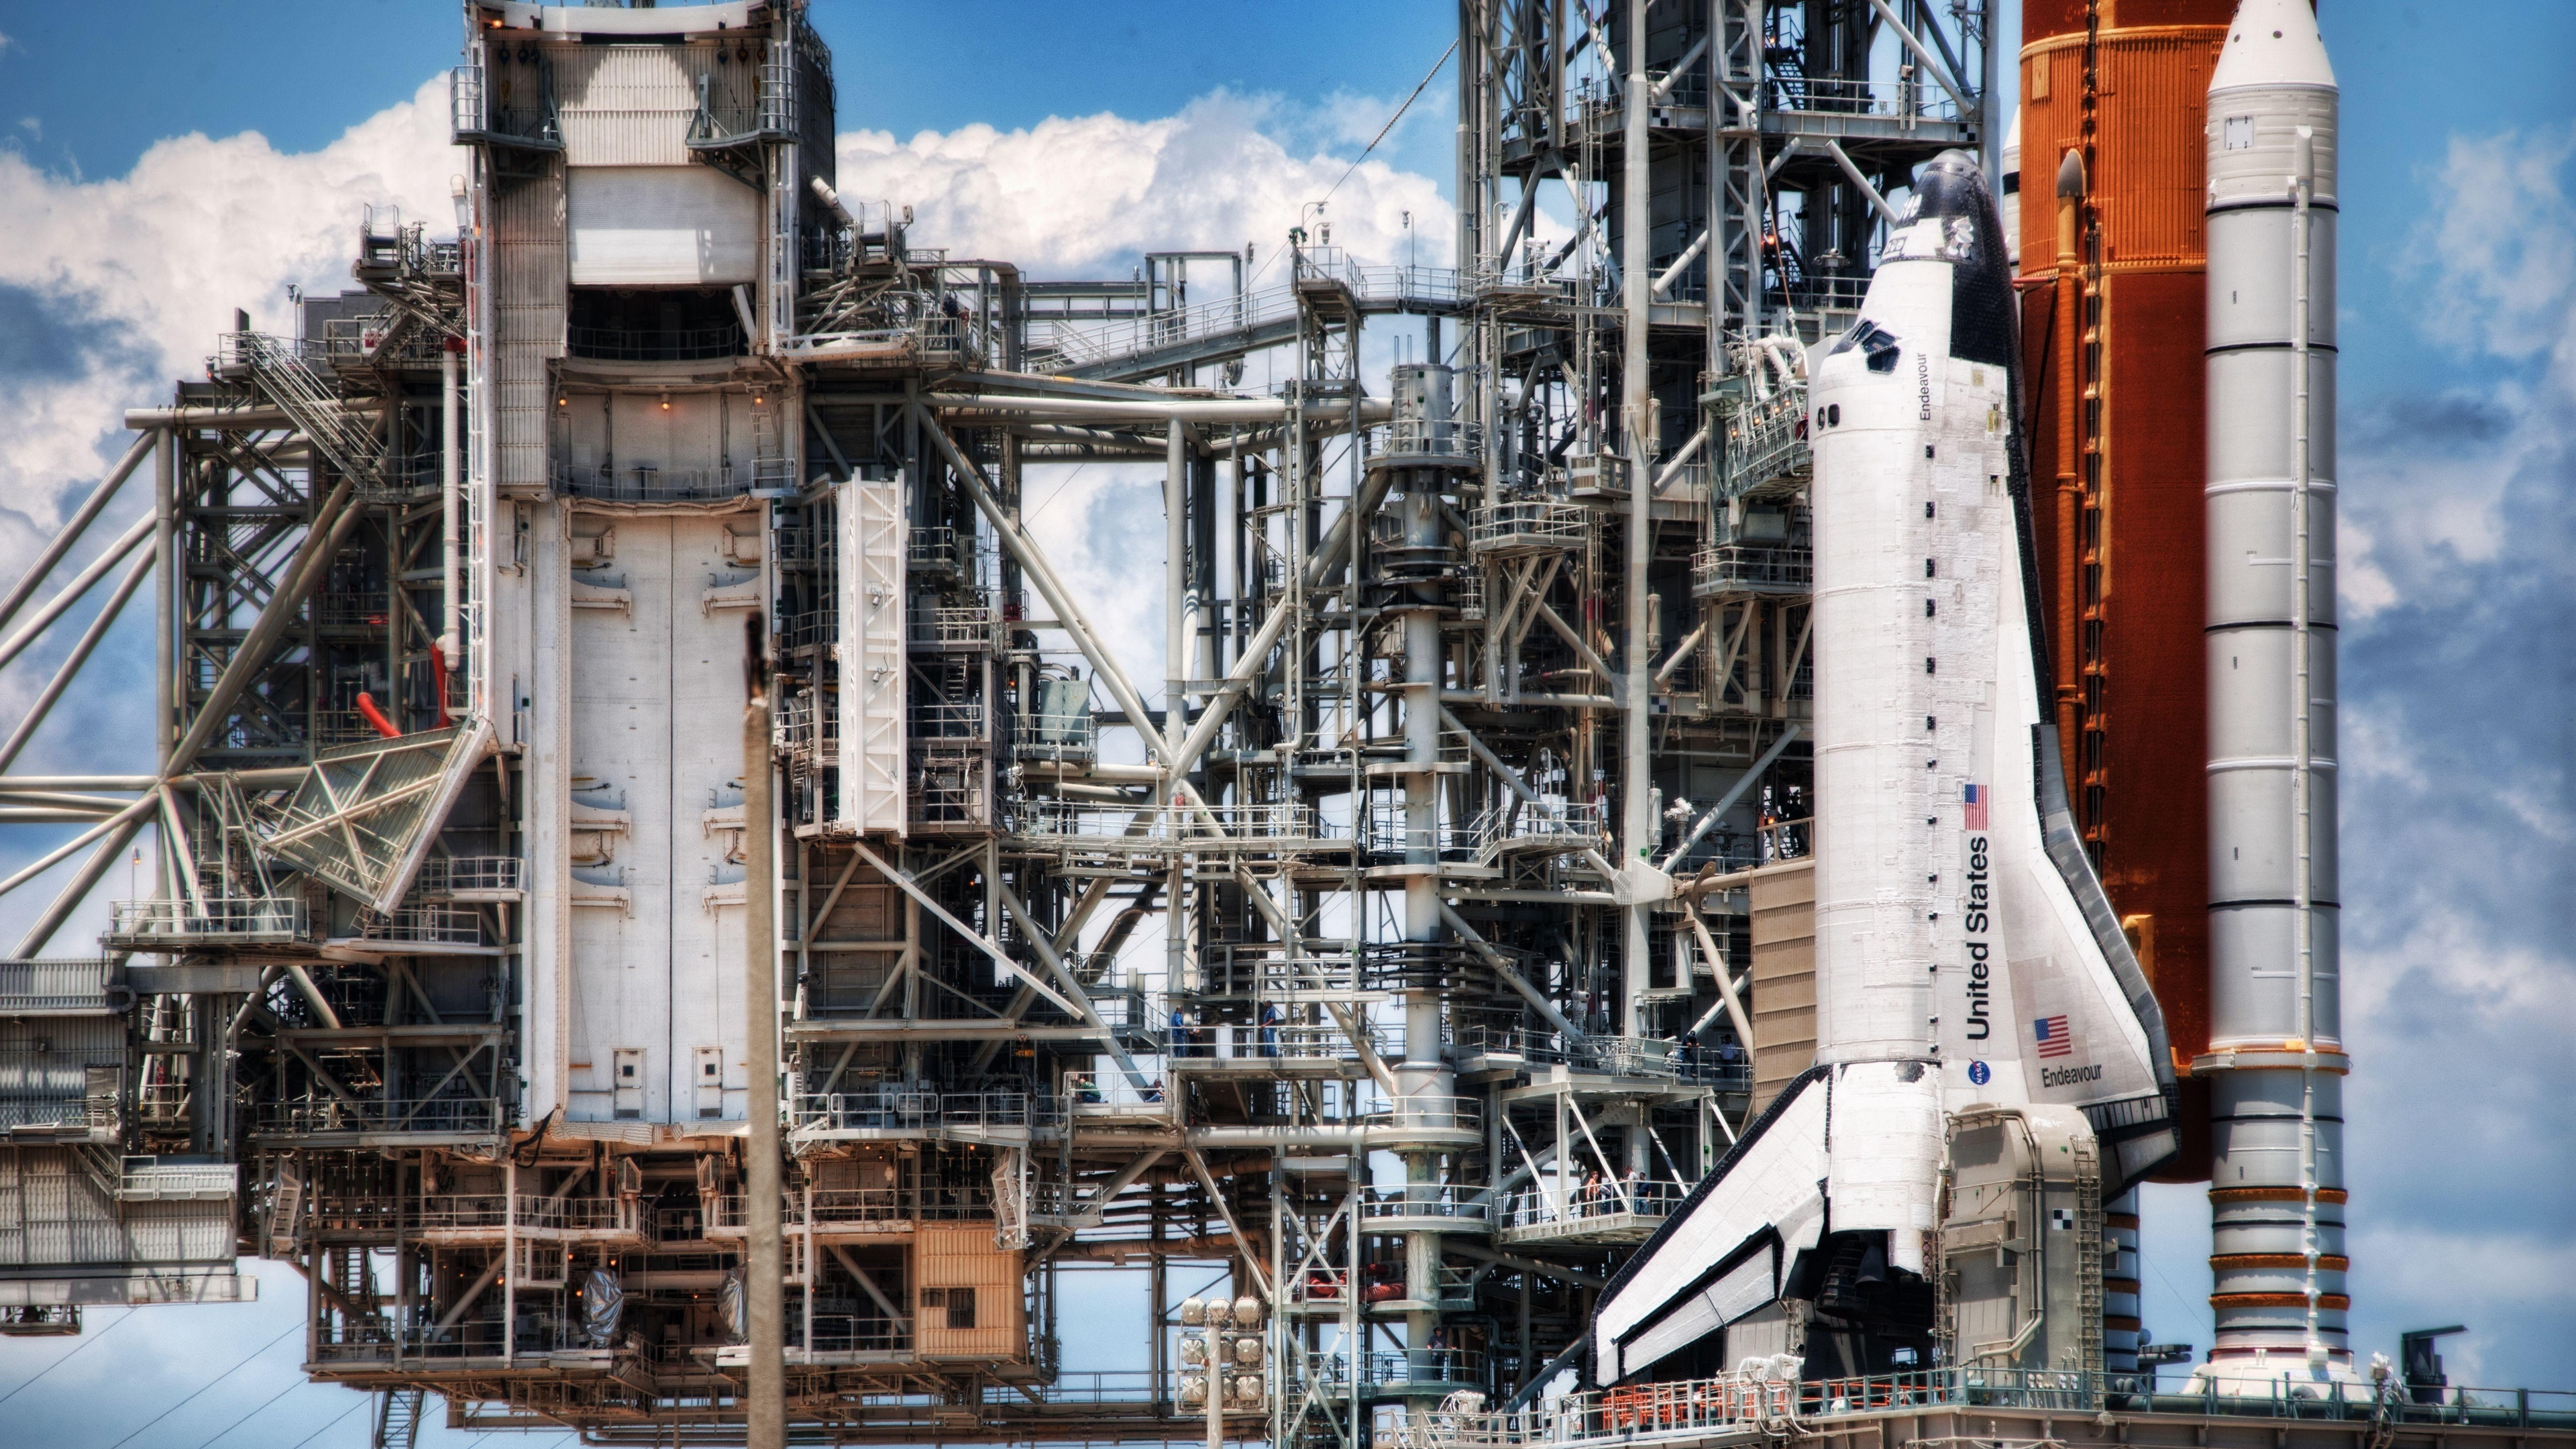 launching pad spaceport shuttle clouds running 4k 1536016171 - launching pad, spaceport, shuttle, clouds, running 4k - spaceport, Shuttle, launching pad